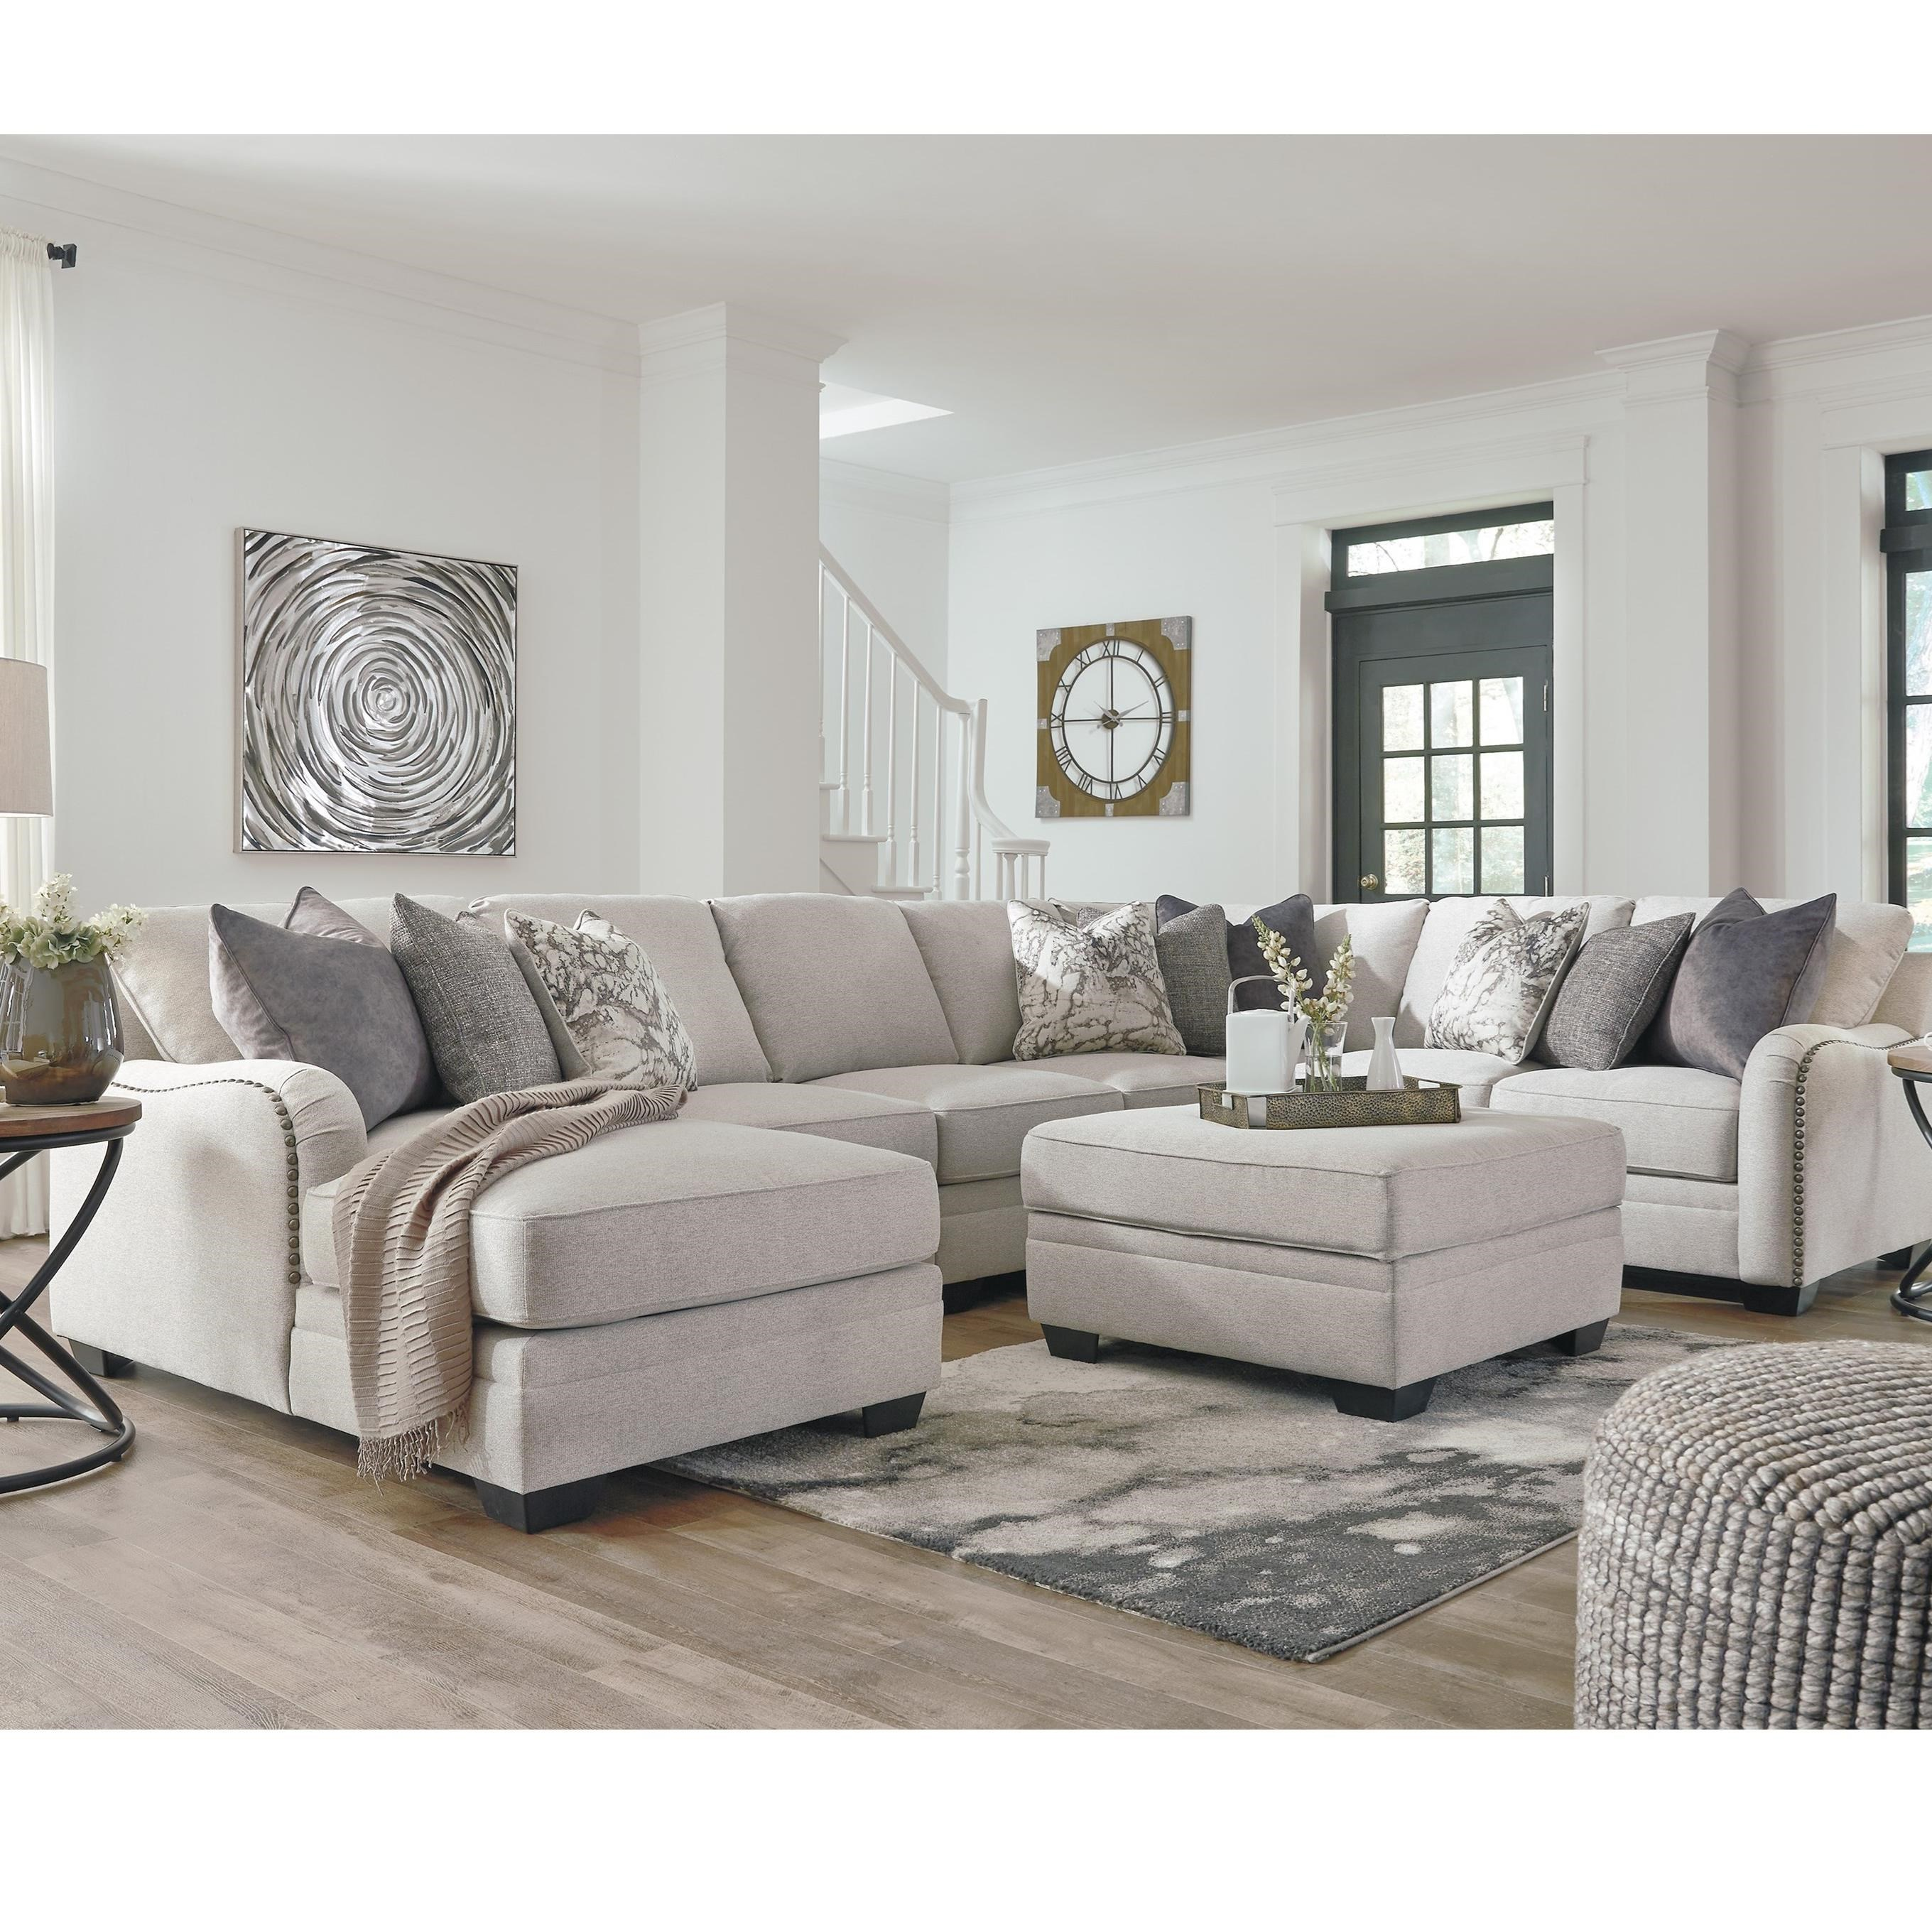 Benchcraft Dellara Casual 5-Piece Sectional With Left